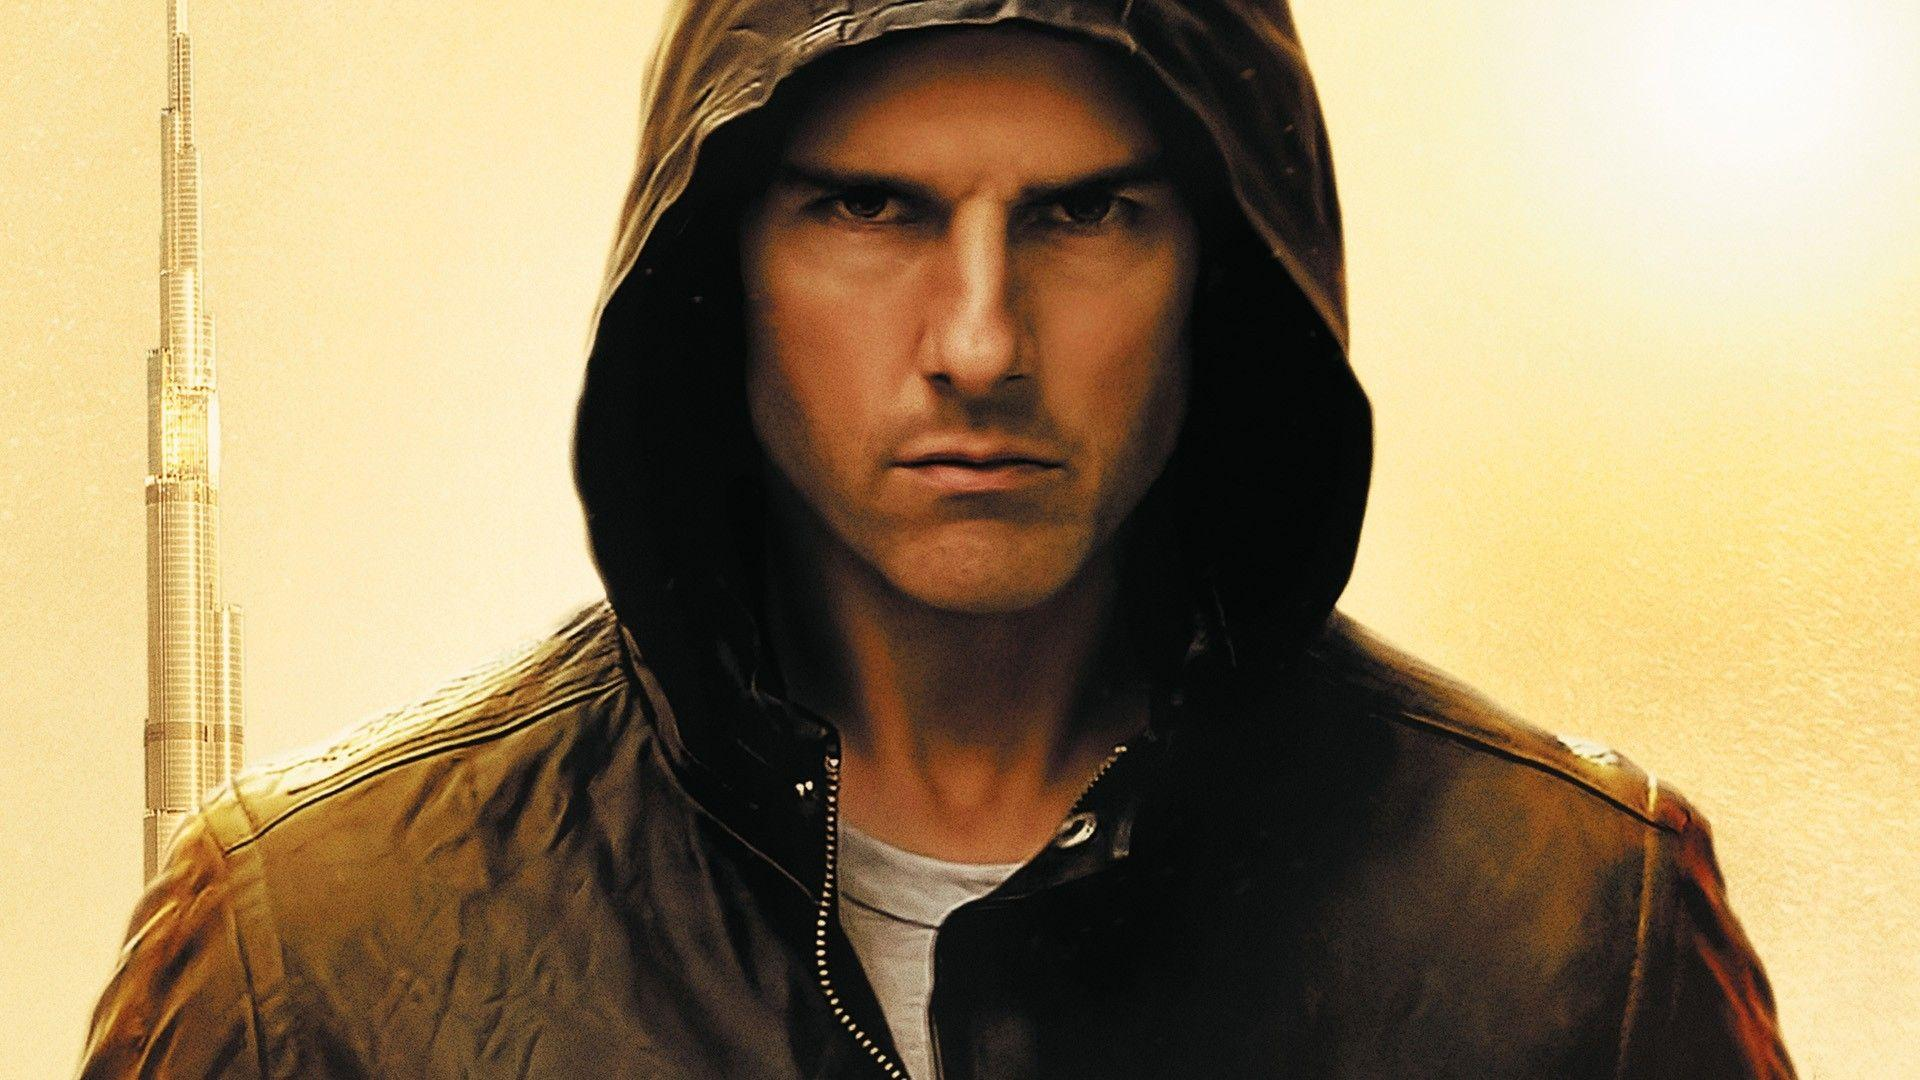 Mission Impossible Wallpapers Wallpaper Cave